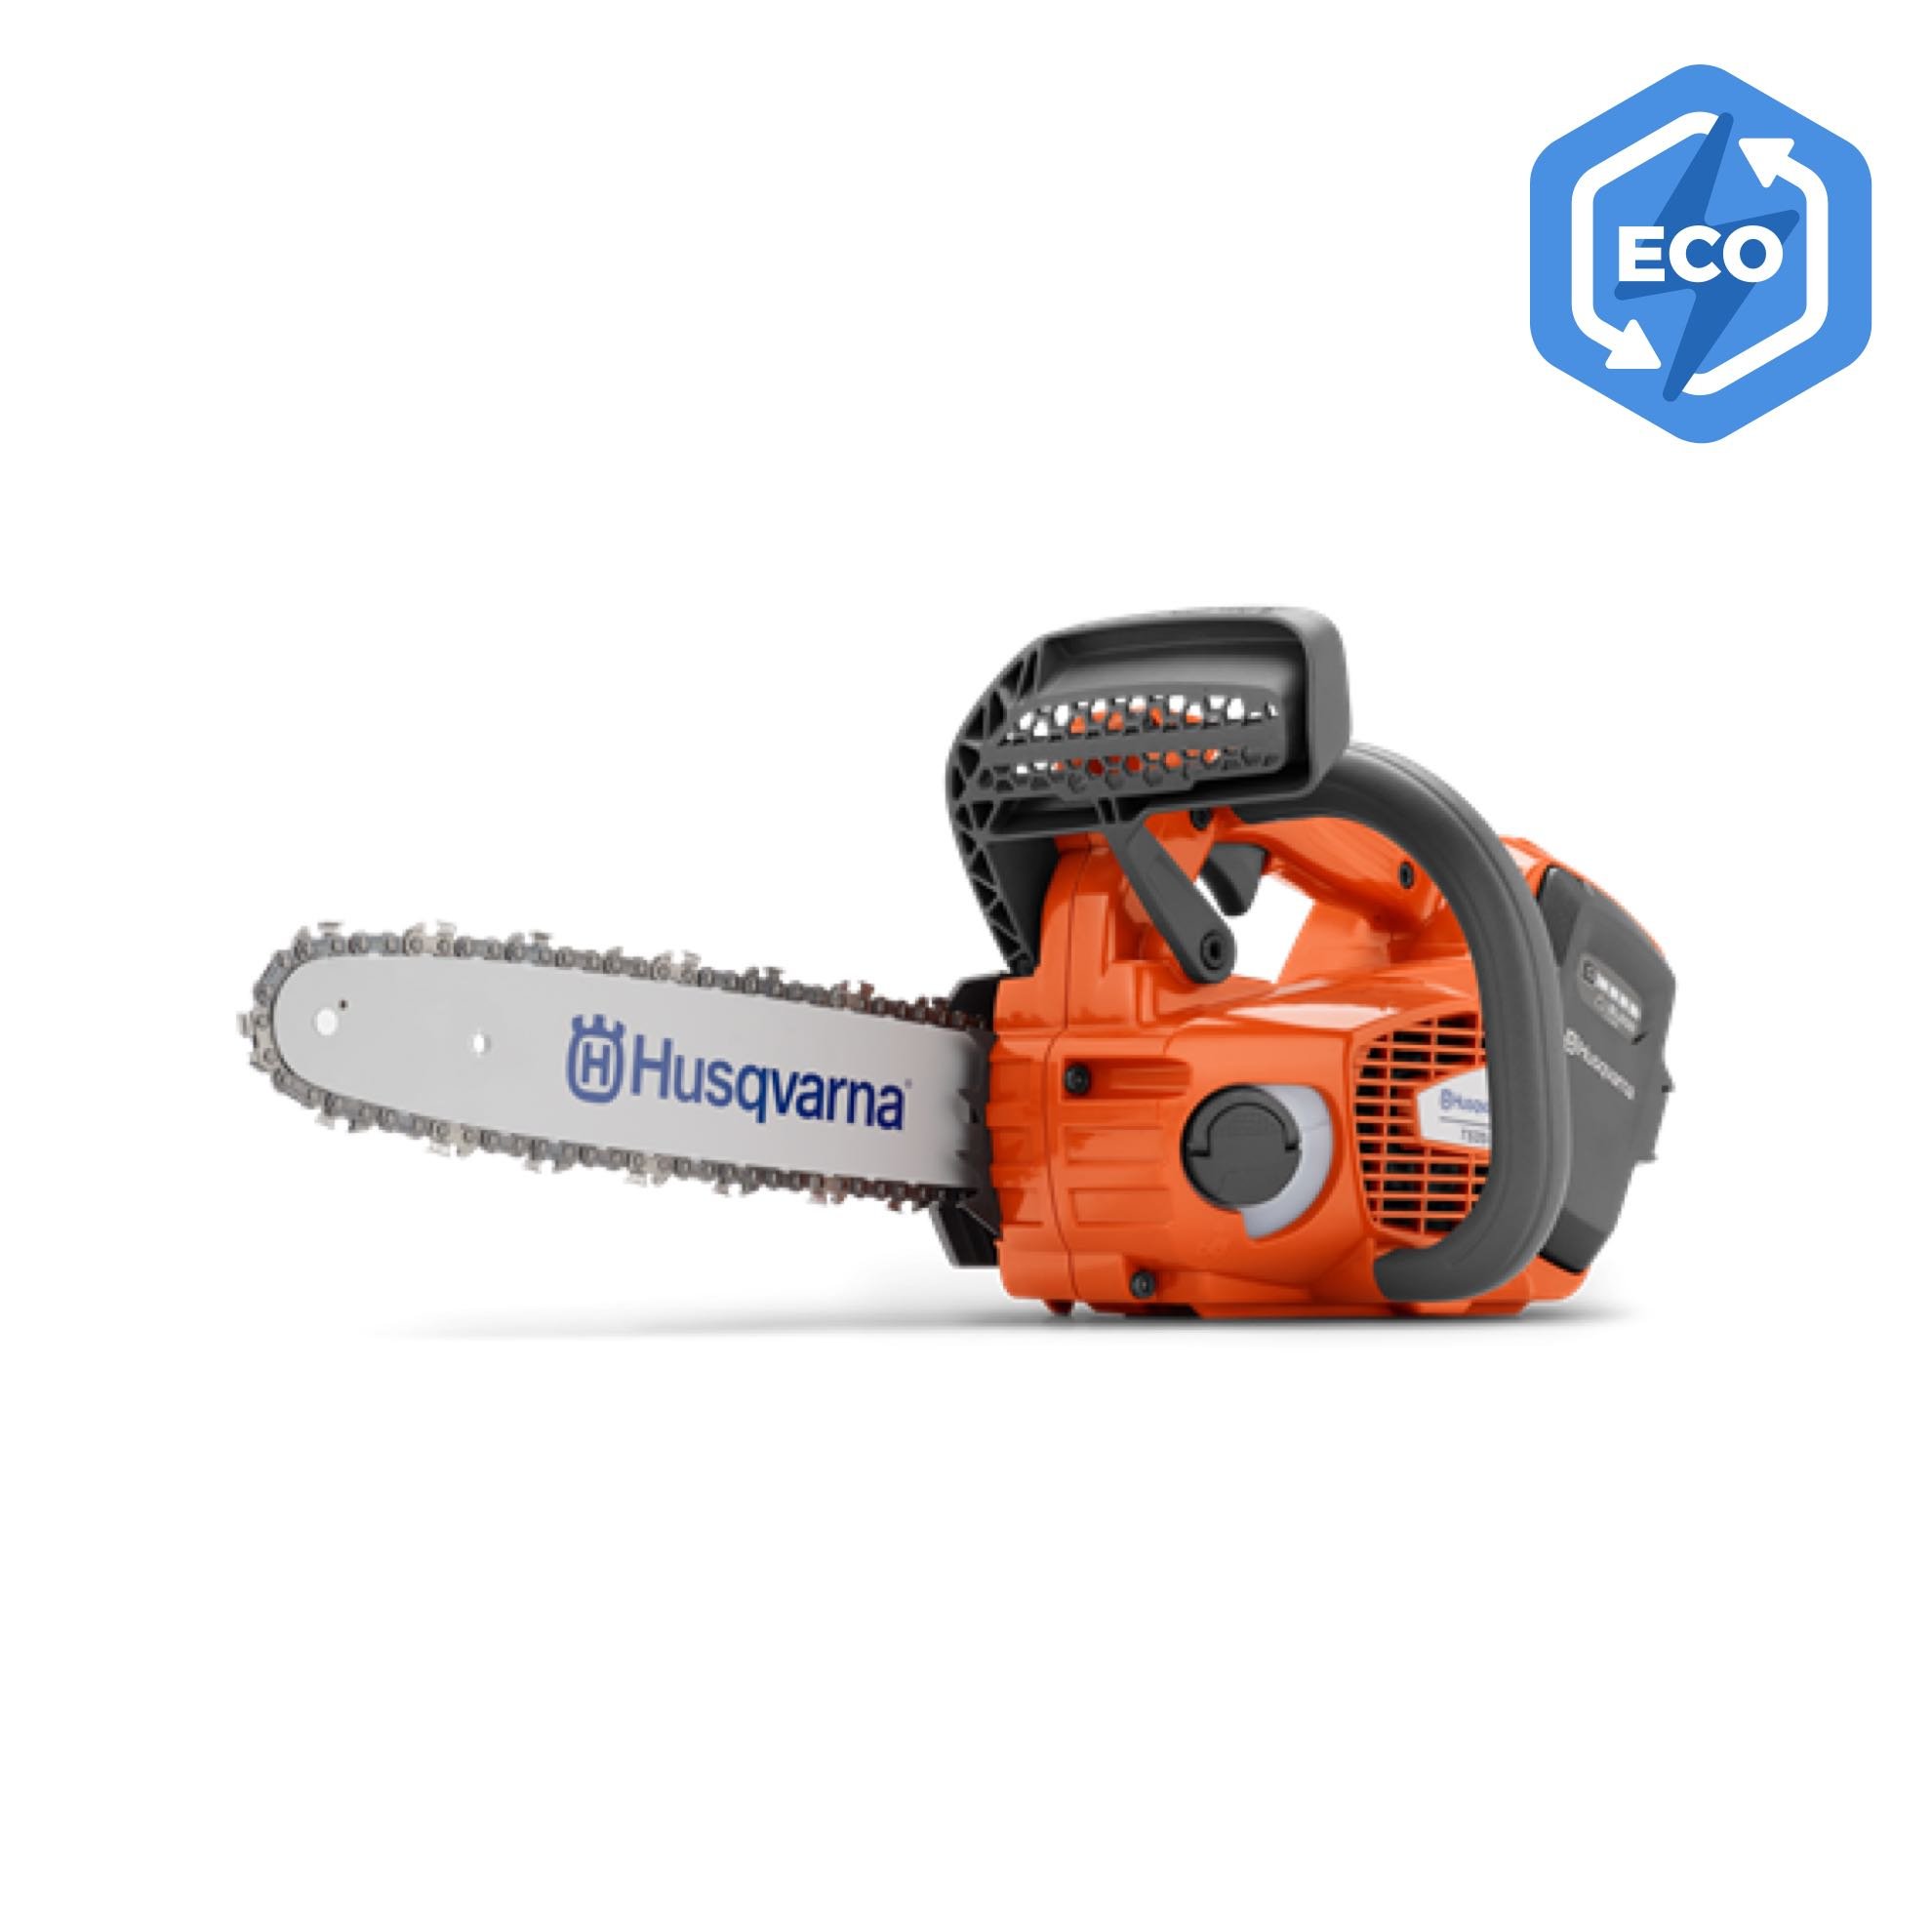 Husqvarna T535i XP Chainsaw